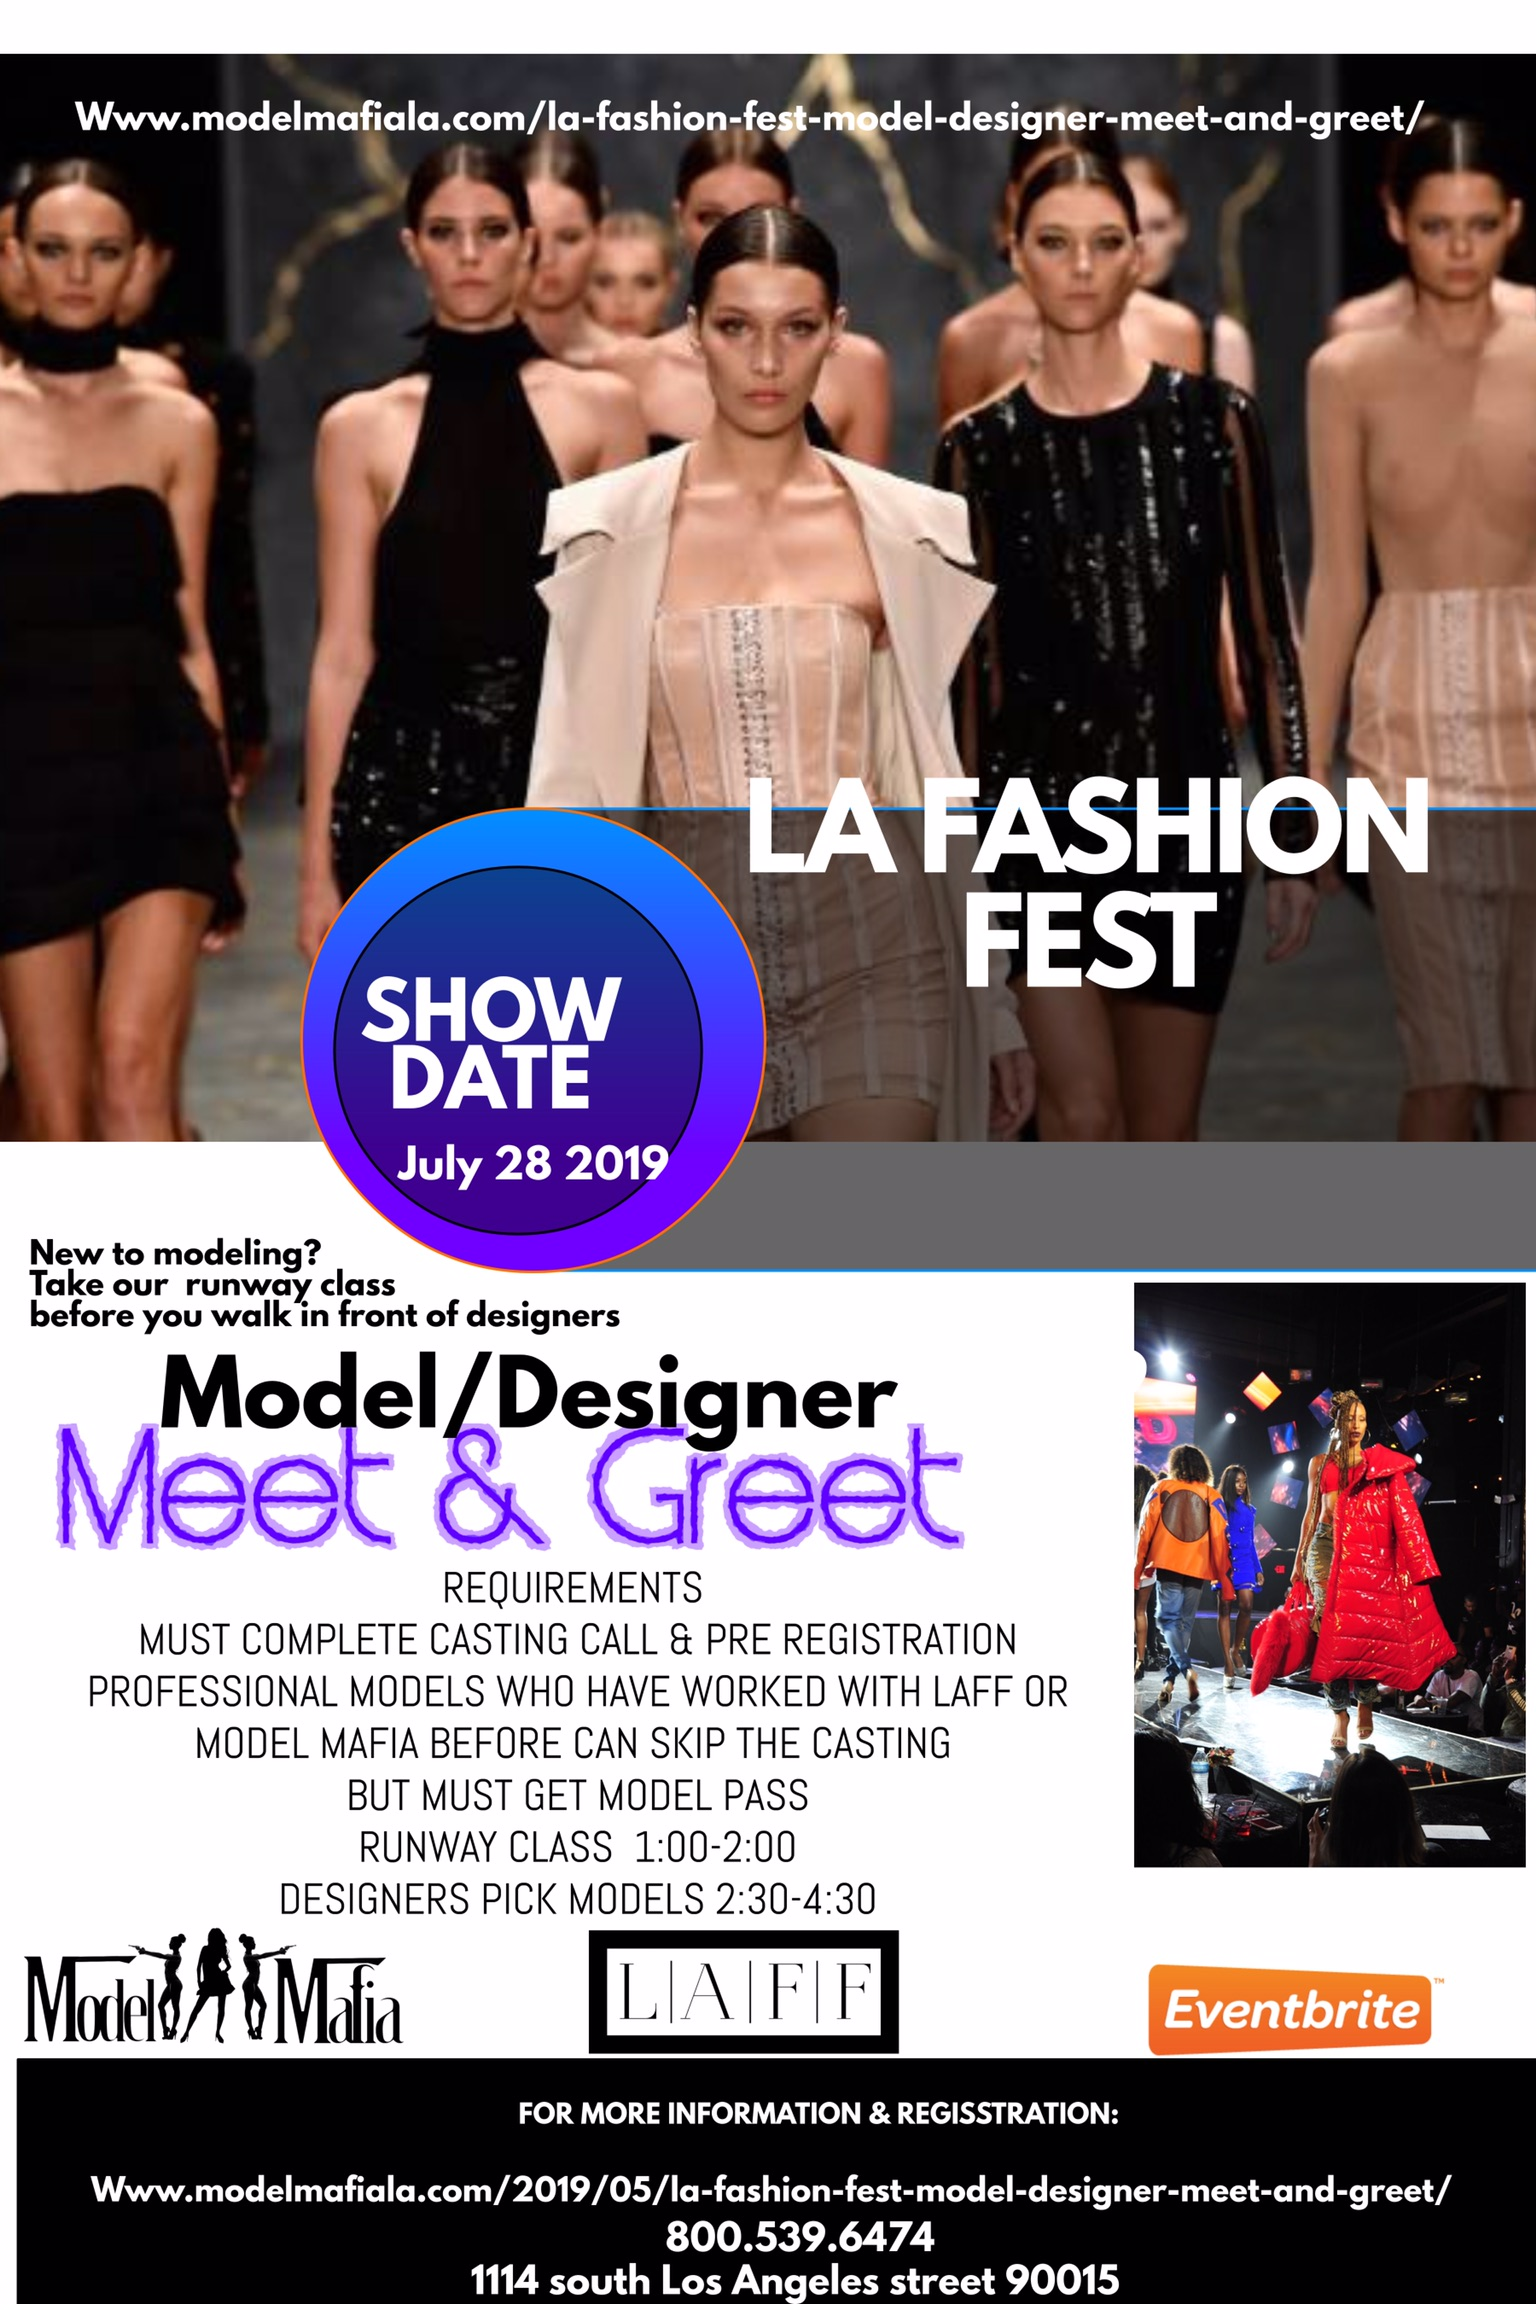 La Fashion Fest Meet and Greet by MODEL MAFIA 7/14/19 – CIE